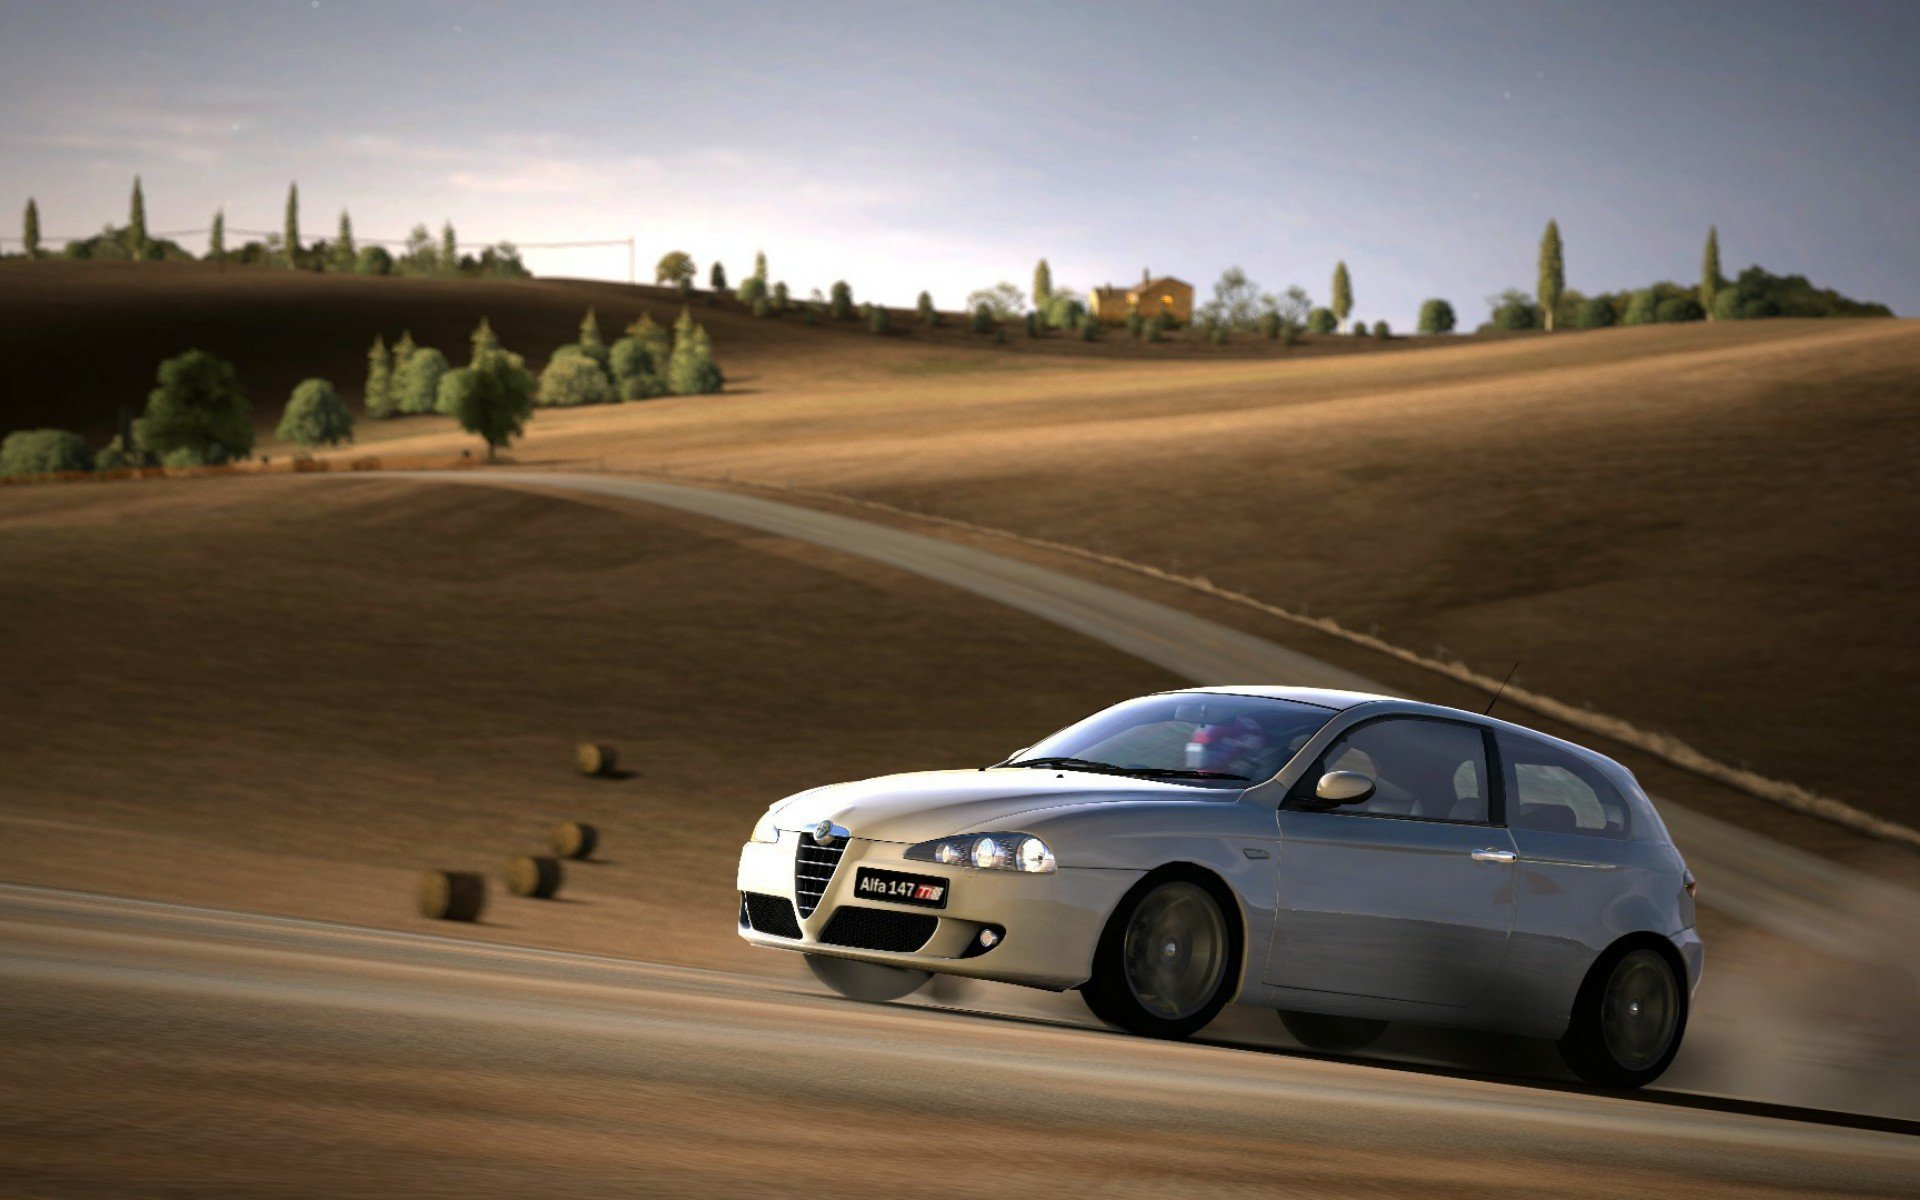 1920x1200 - Alfa Romeo 147 Wallpapers 5